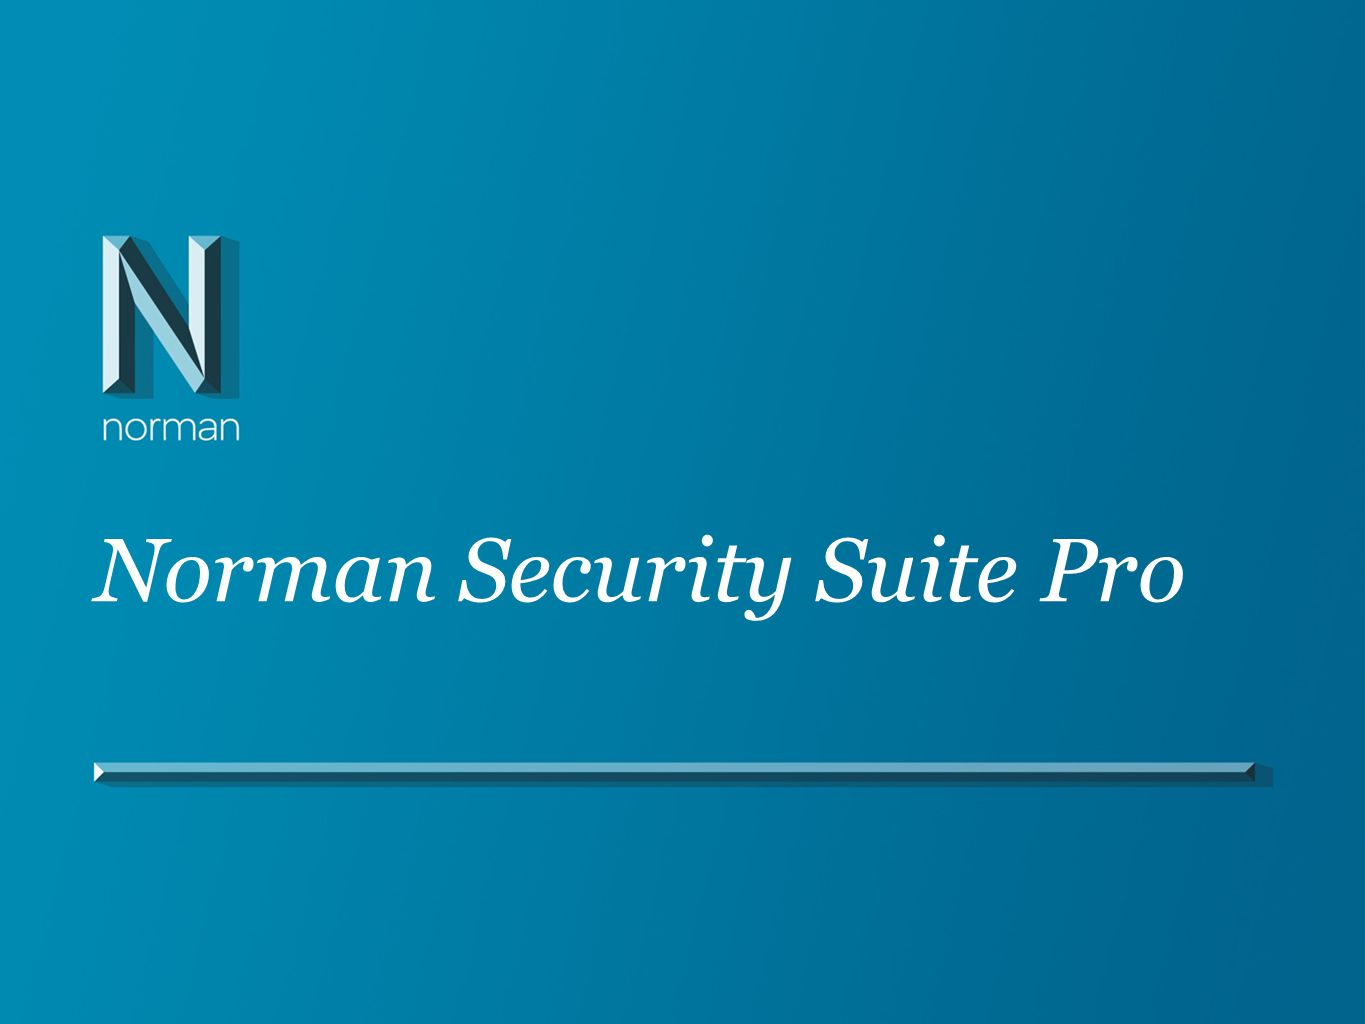 Norman Security Suite Pro